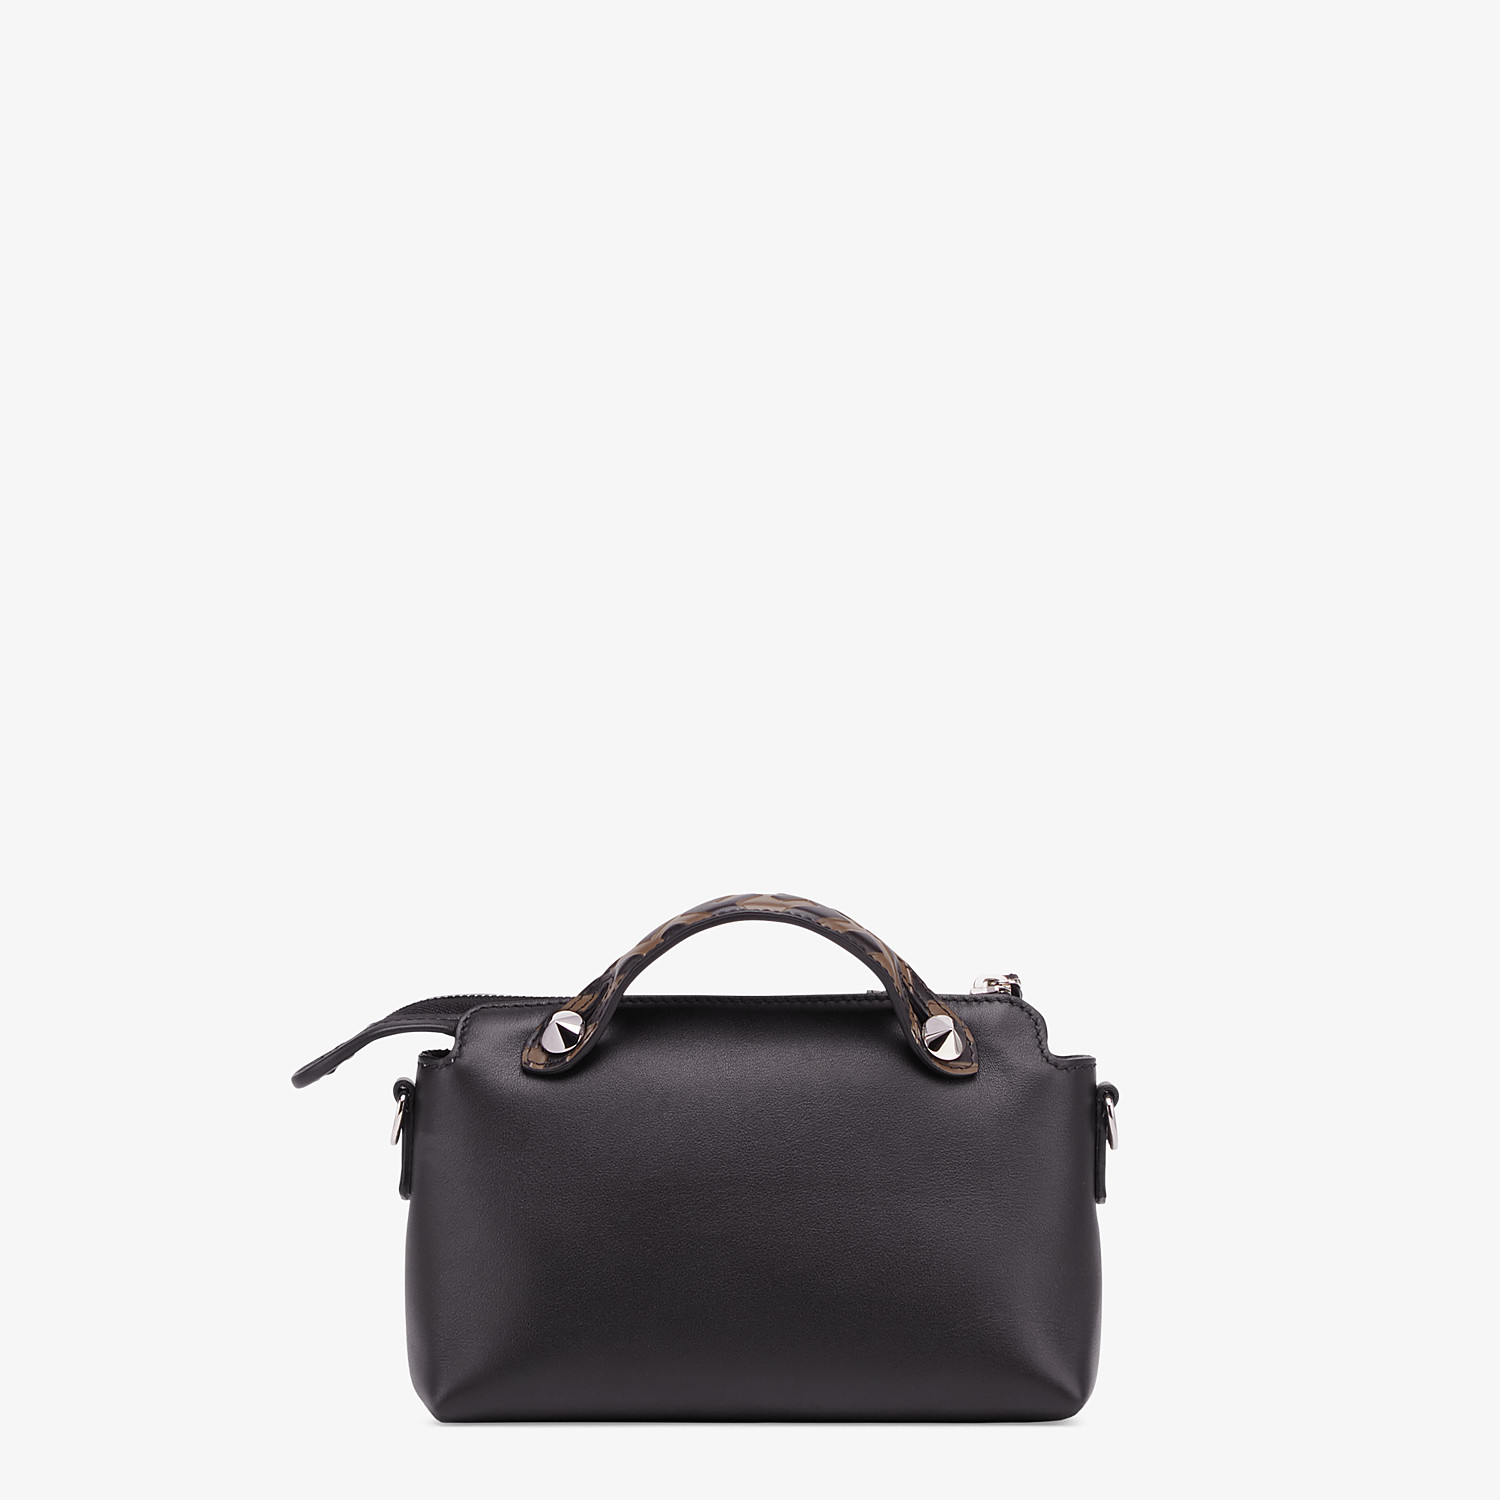 FENDI BY THE WAY MINI - Small black leather Boston bag - view 4 detail